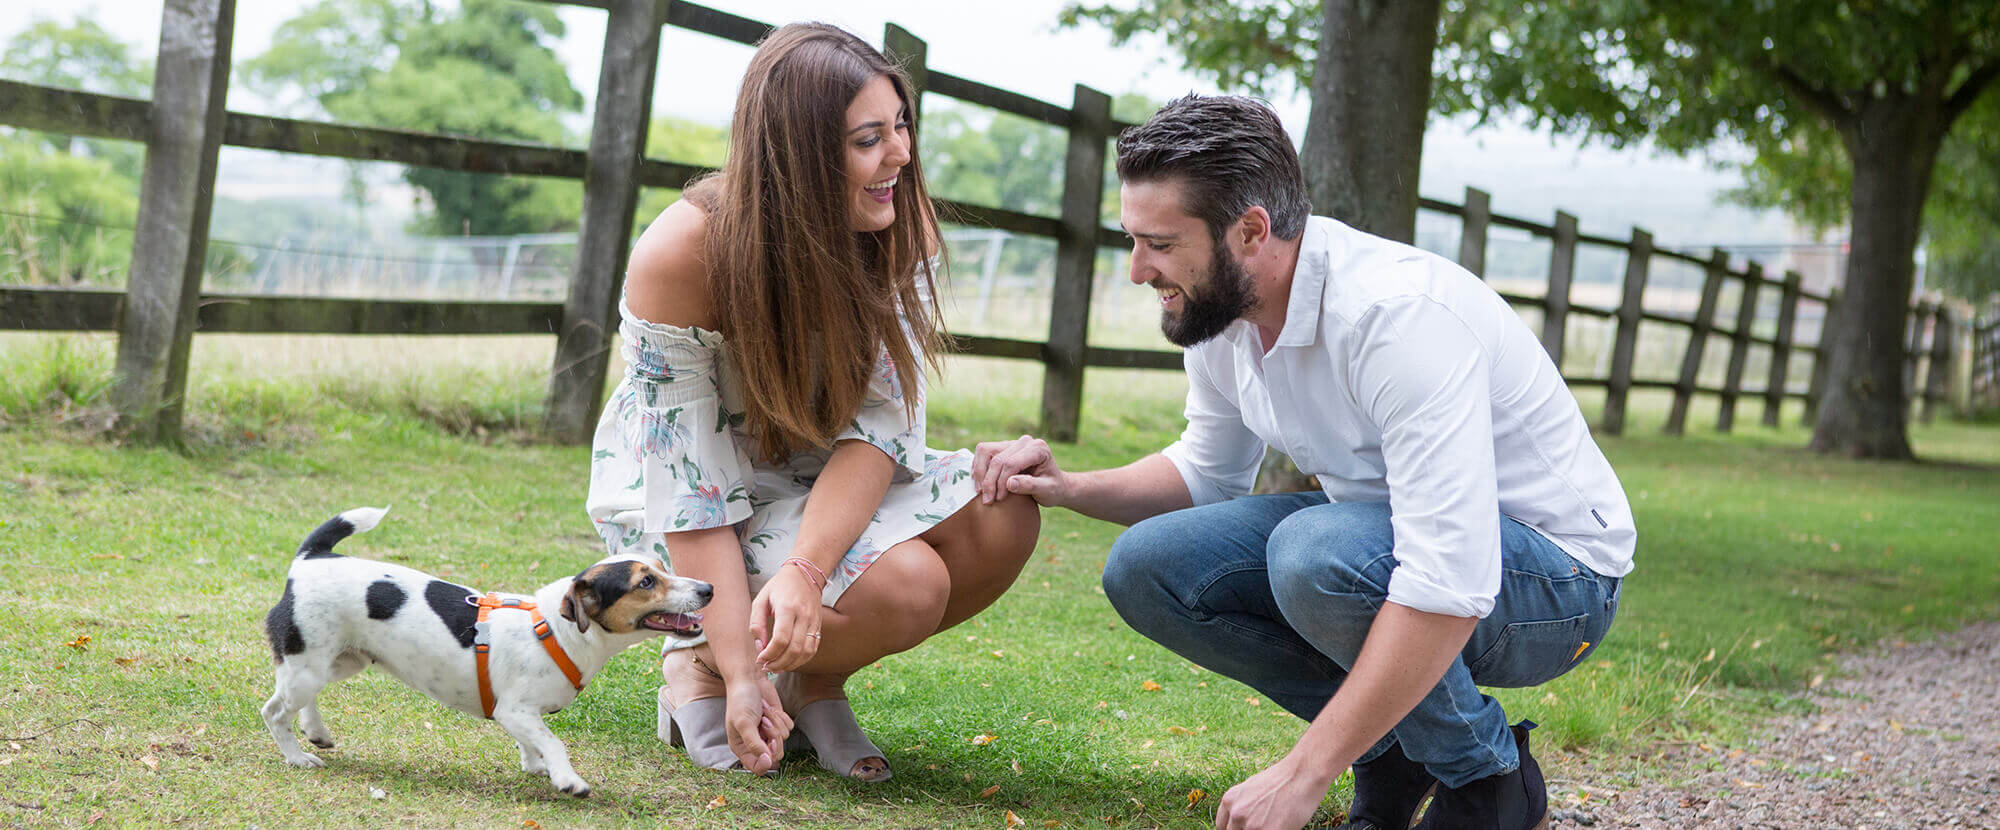 Happy couple with dog on engagement shoot